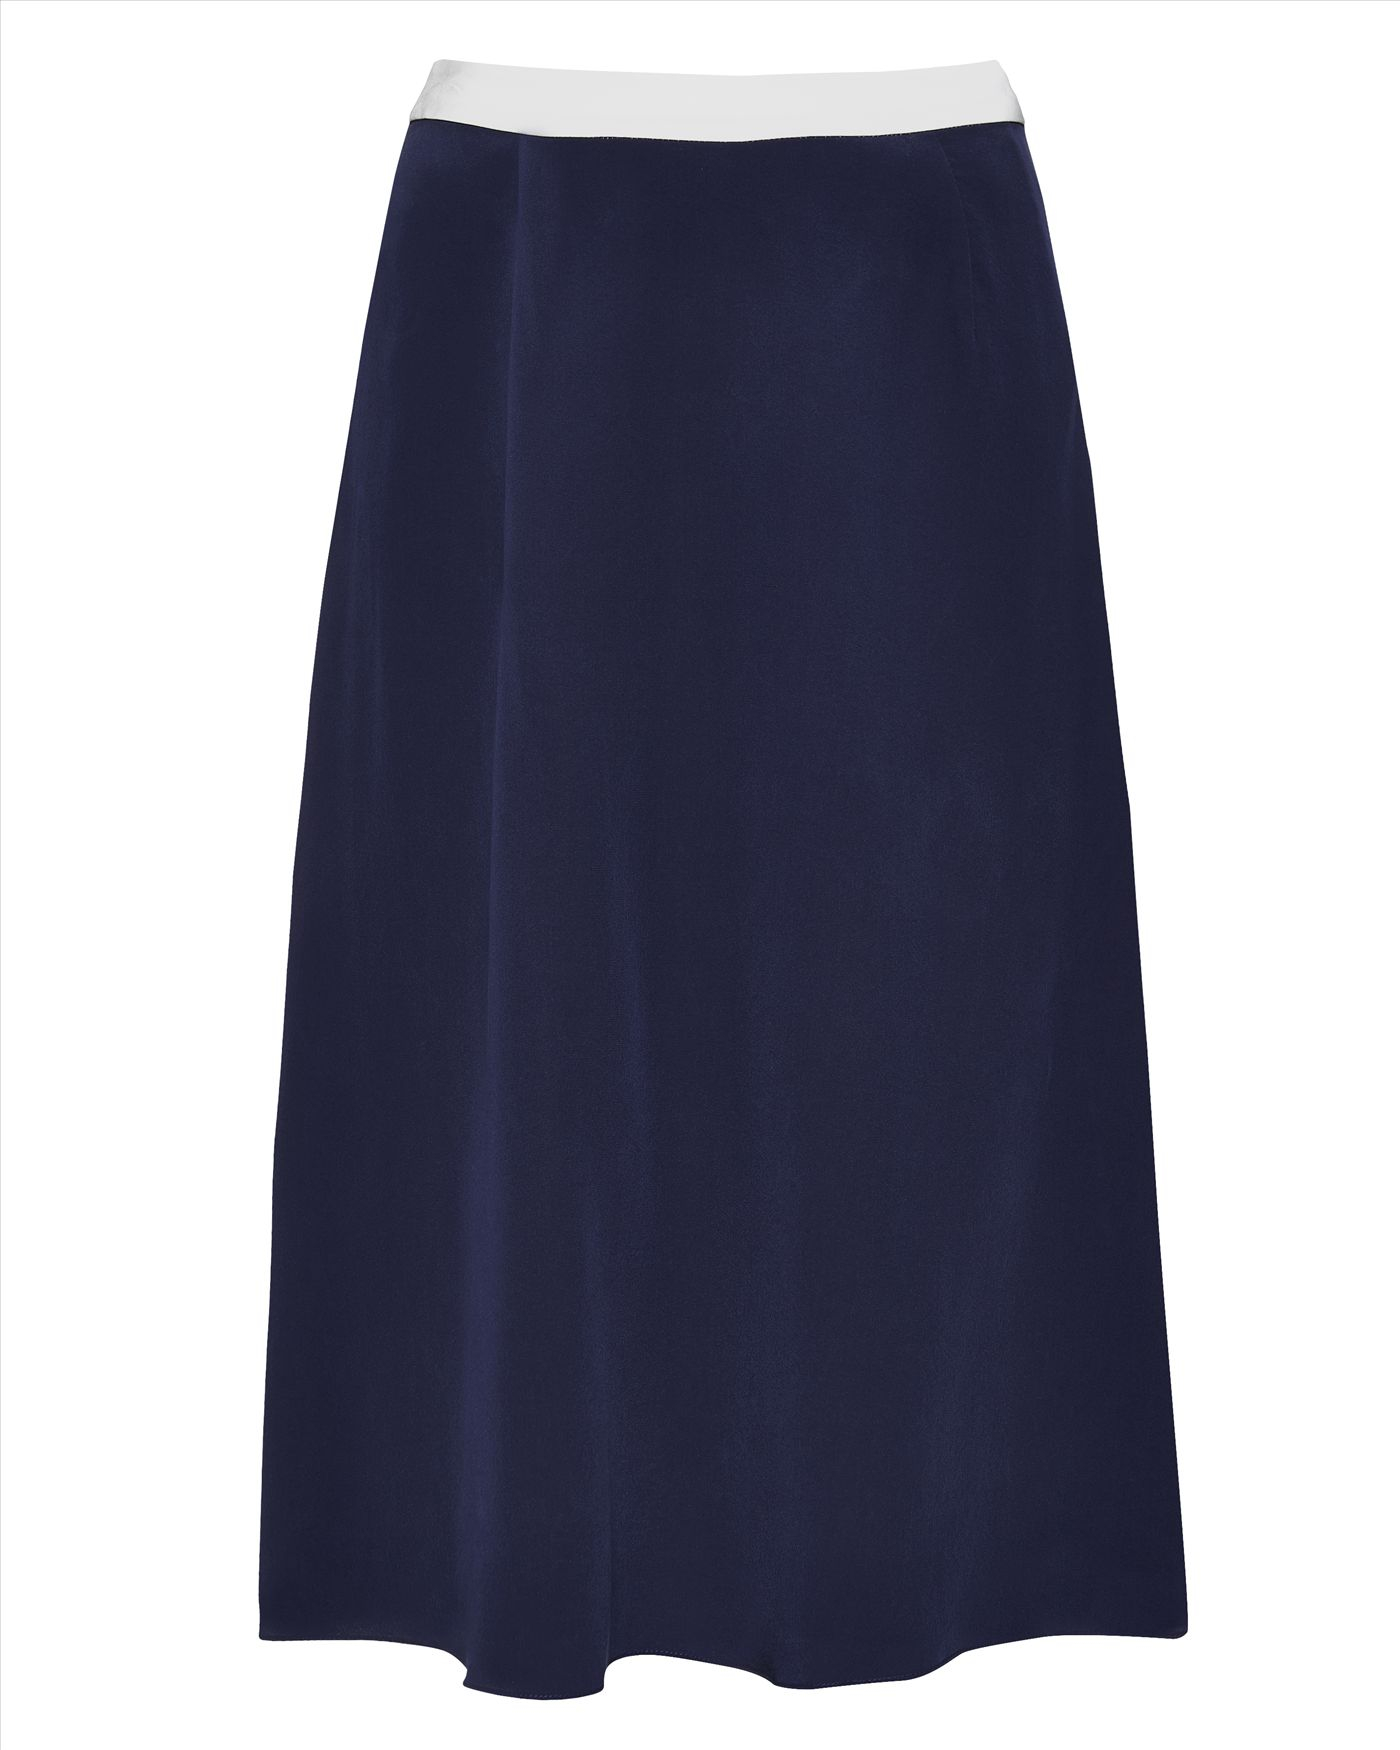 jaeger silk contrast tipping skirt in blue navy white